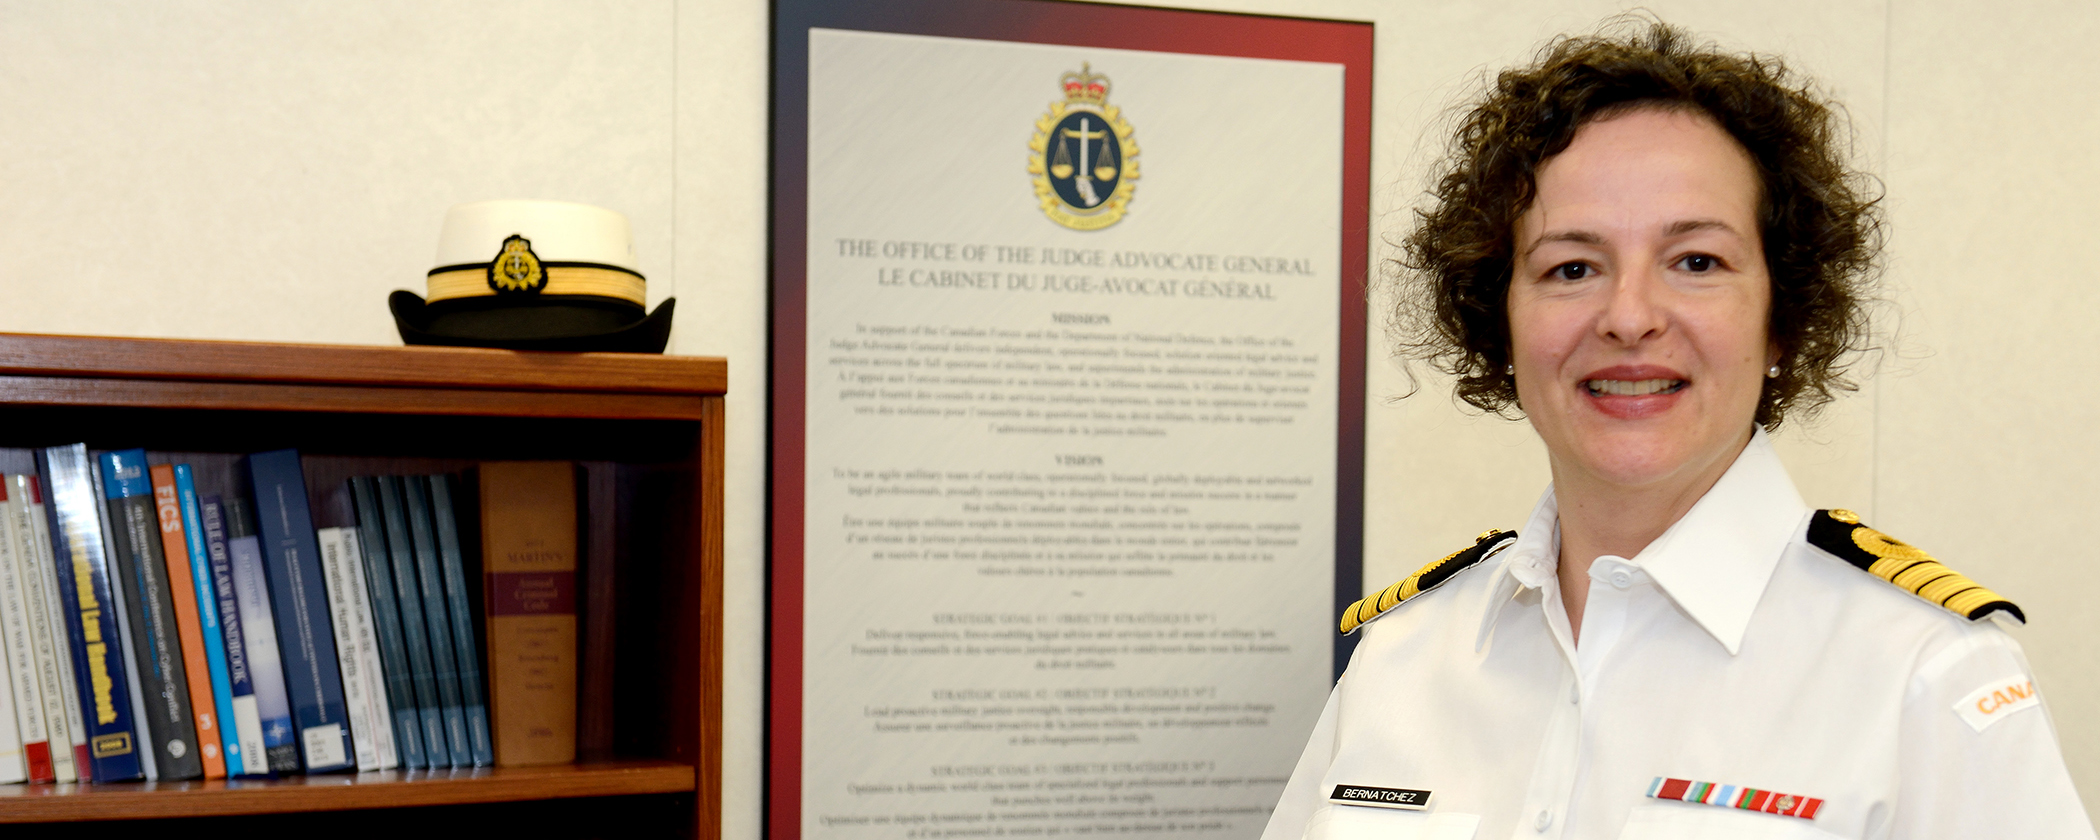 A female Navy officer in a white uniform stands in front of a bookshelf upon which her hat is placed. There is a poster on the wall behind her.